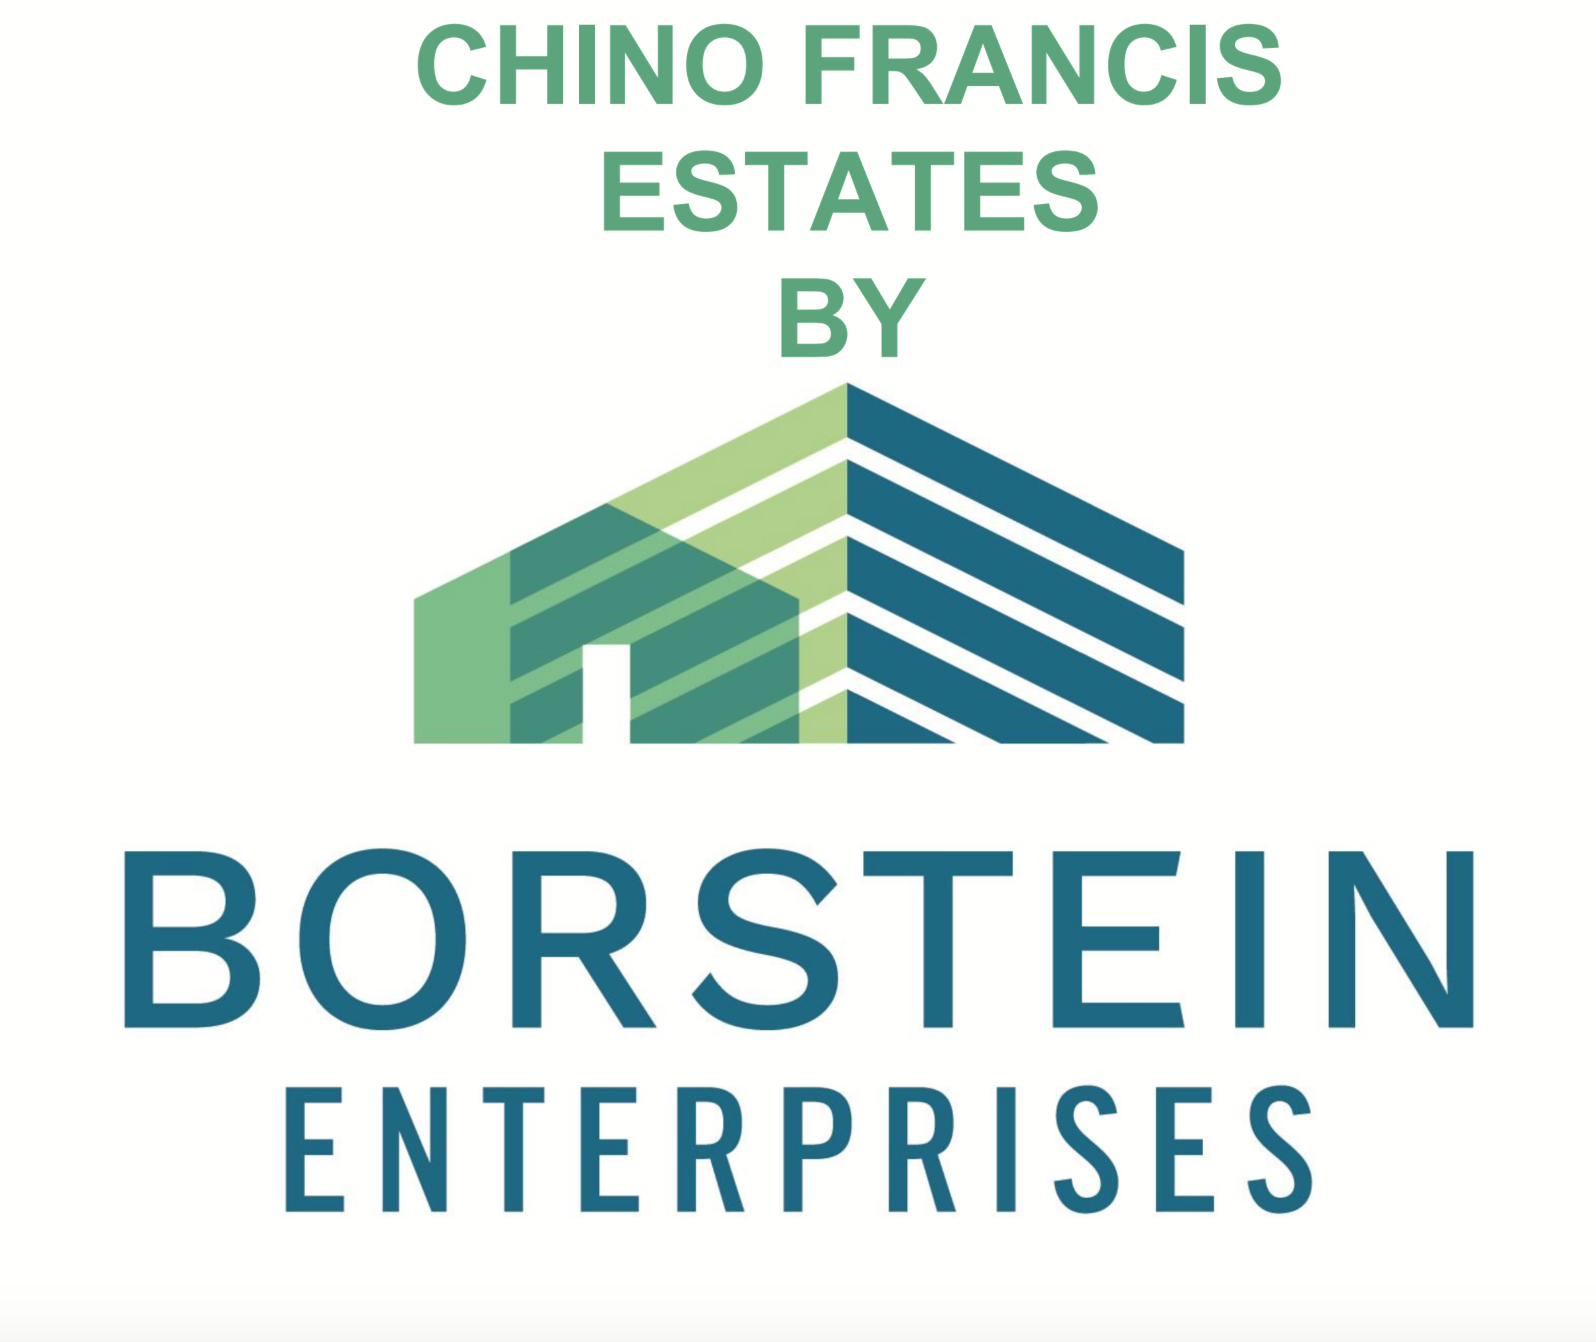 Borstein Enterprises Chino Francis Estates